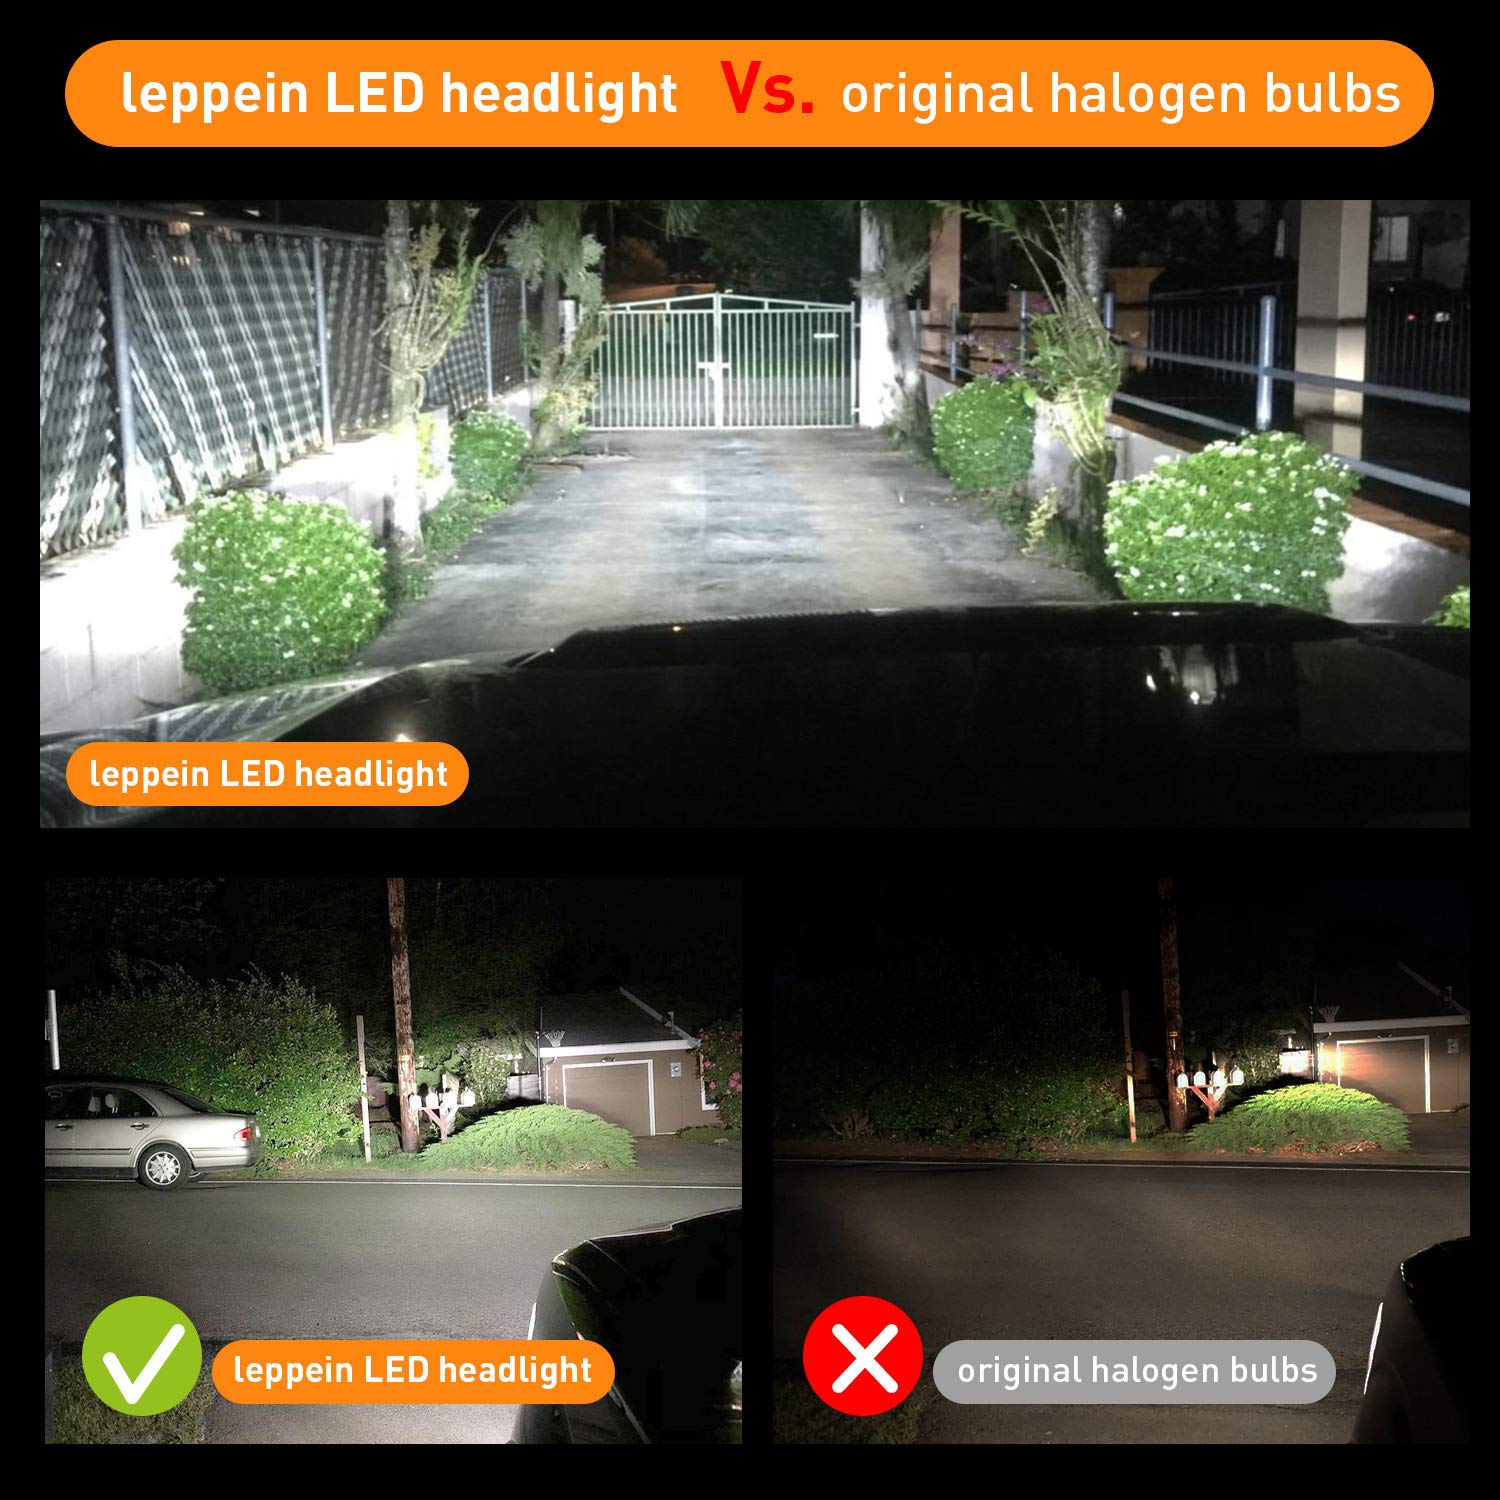 H11//H8//H9 LED Headlight Bulbs leppein S Series Low Beam//Fog Light 16xZES 2nd Chips 6500K 8000LM Cool White Halogen Replacement-1 Pair